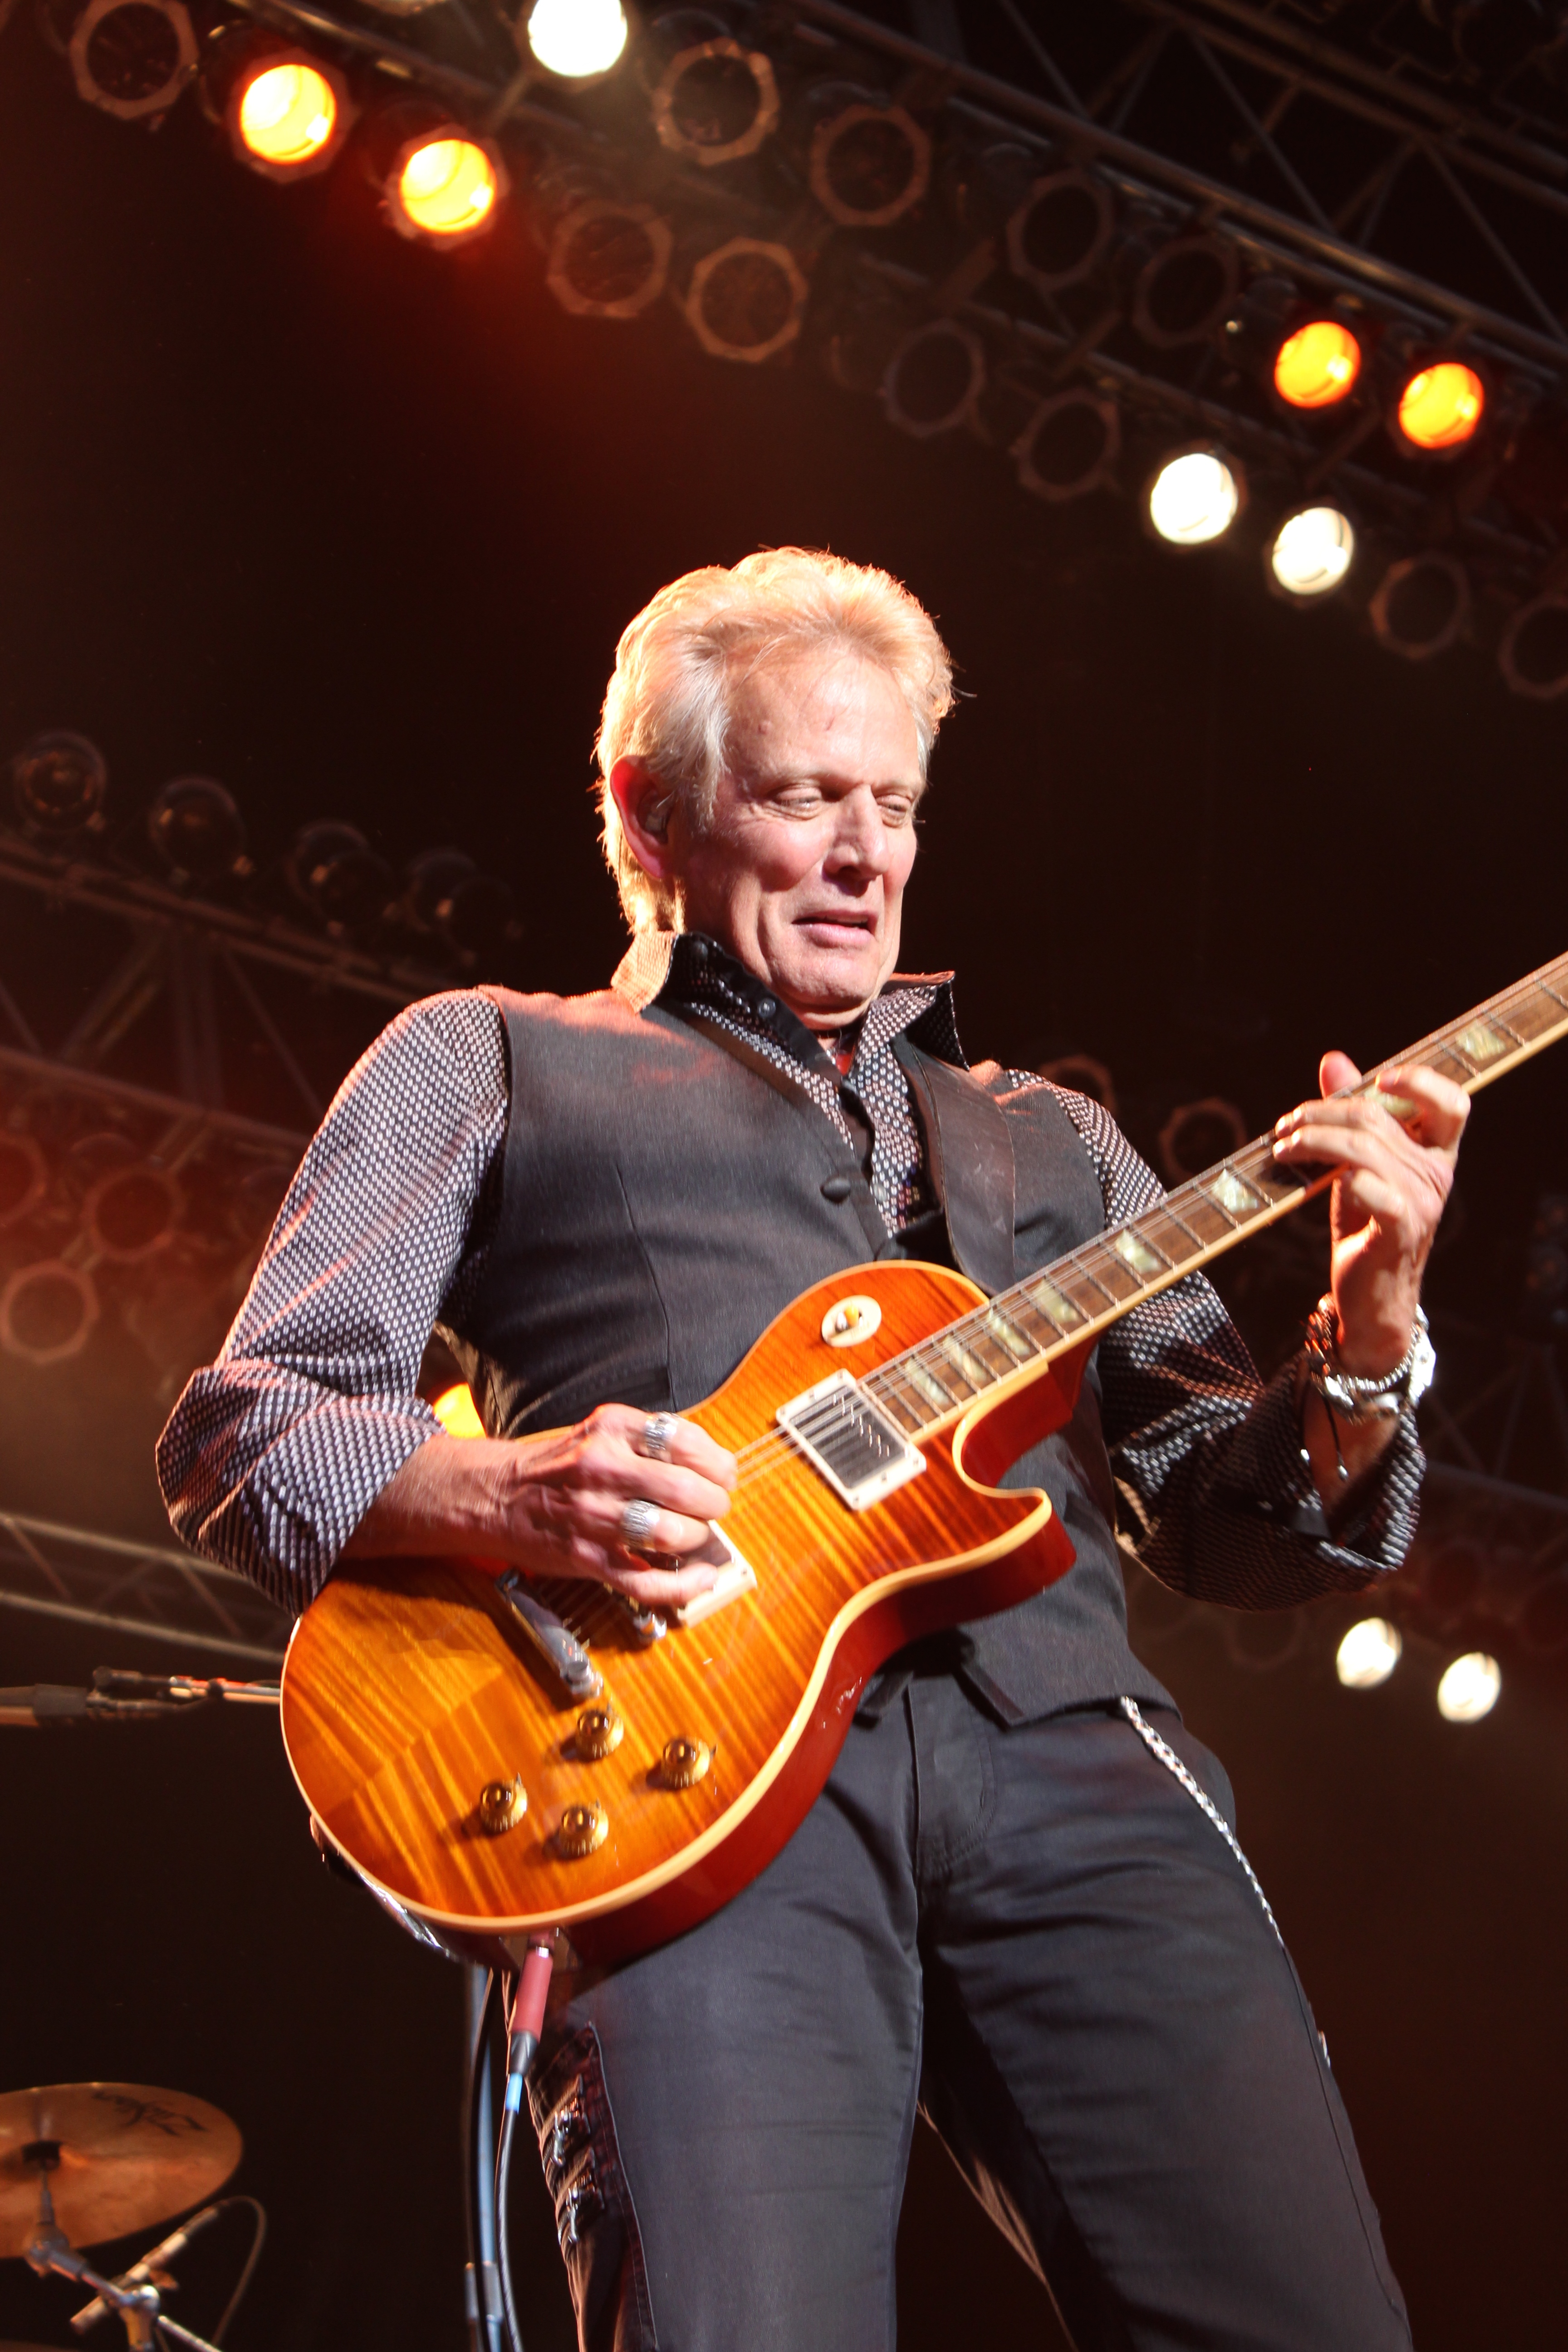 Concert Review: Don Felder and the Doobie Brothers in Alpharetta, GA